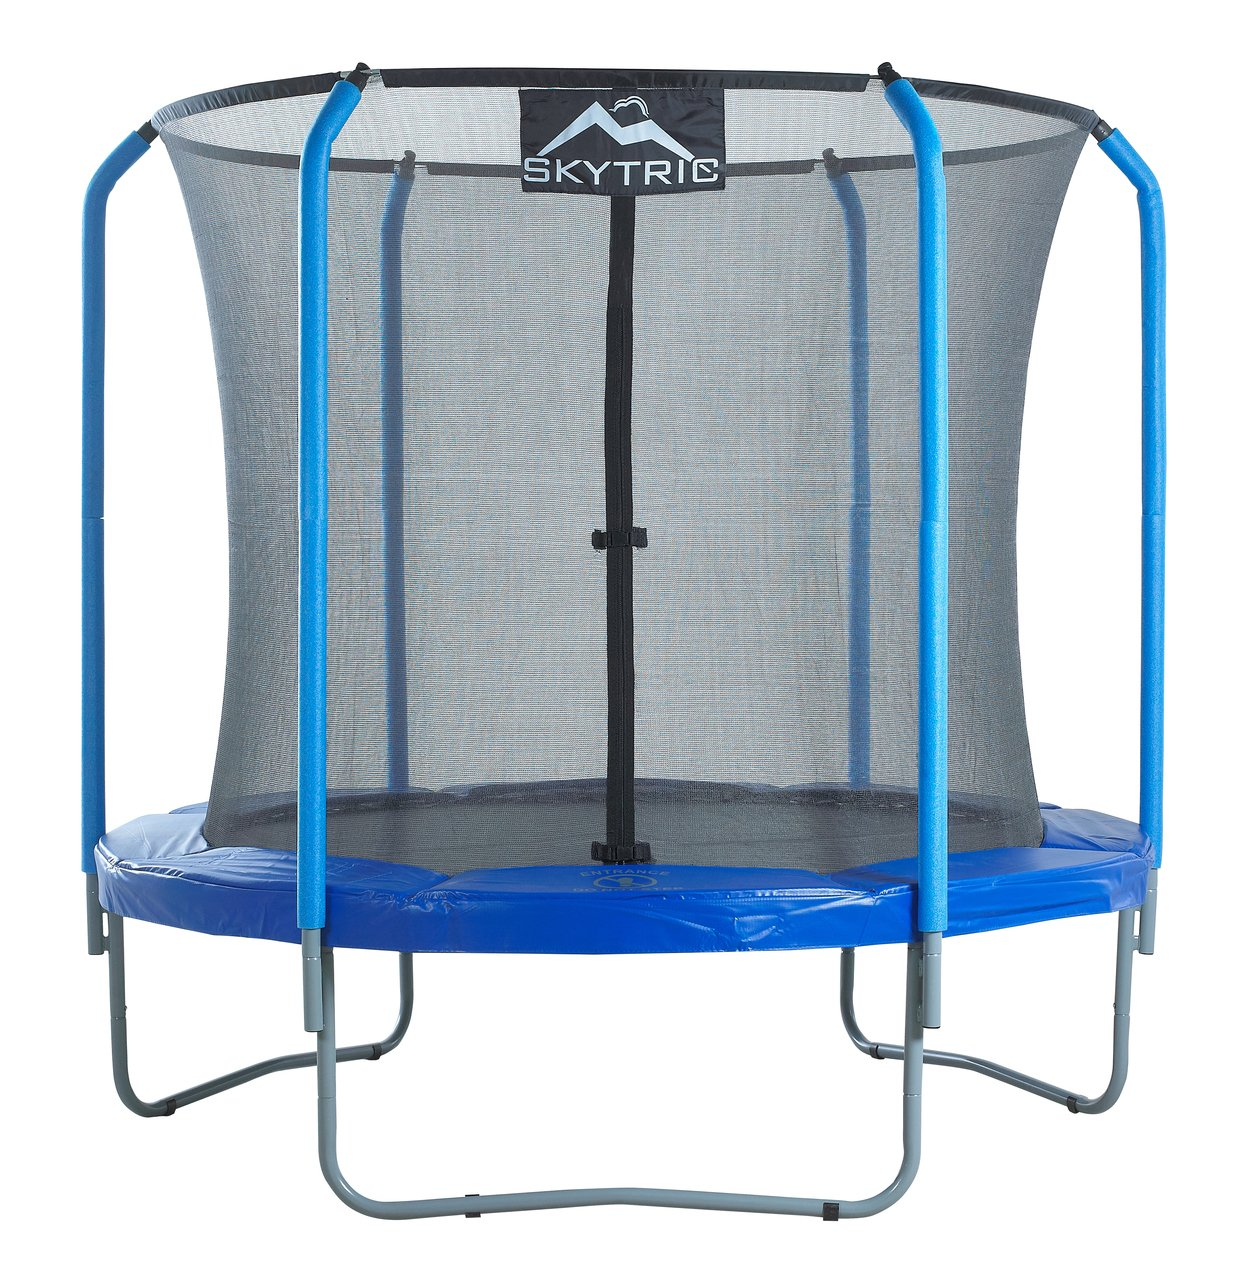 SKYTRIC 8 FT. Trampoline with Top Ring Enclosure System ...